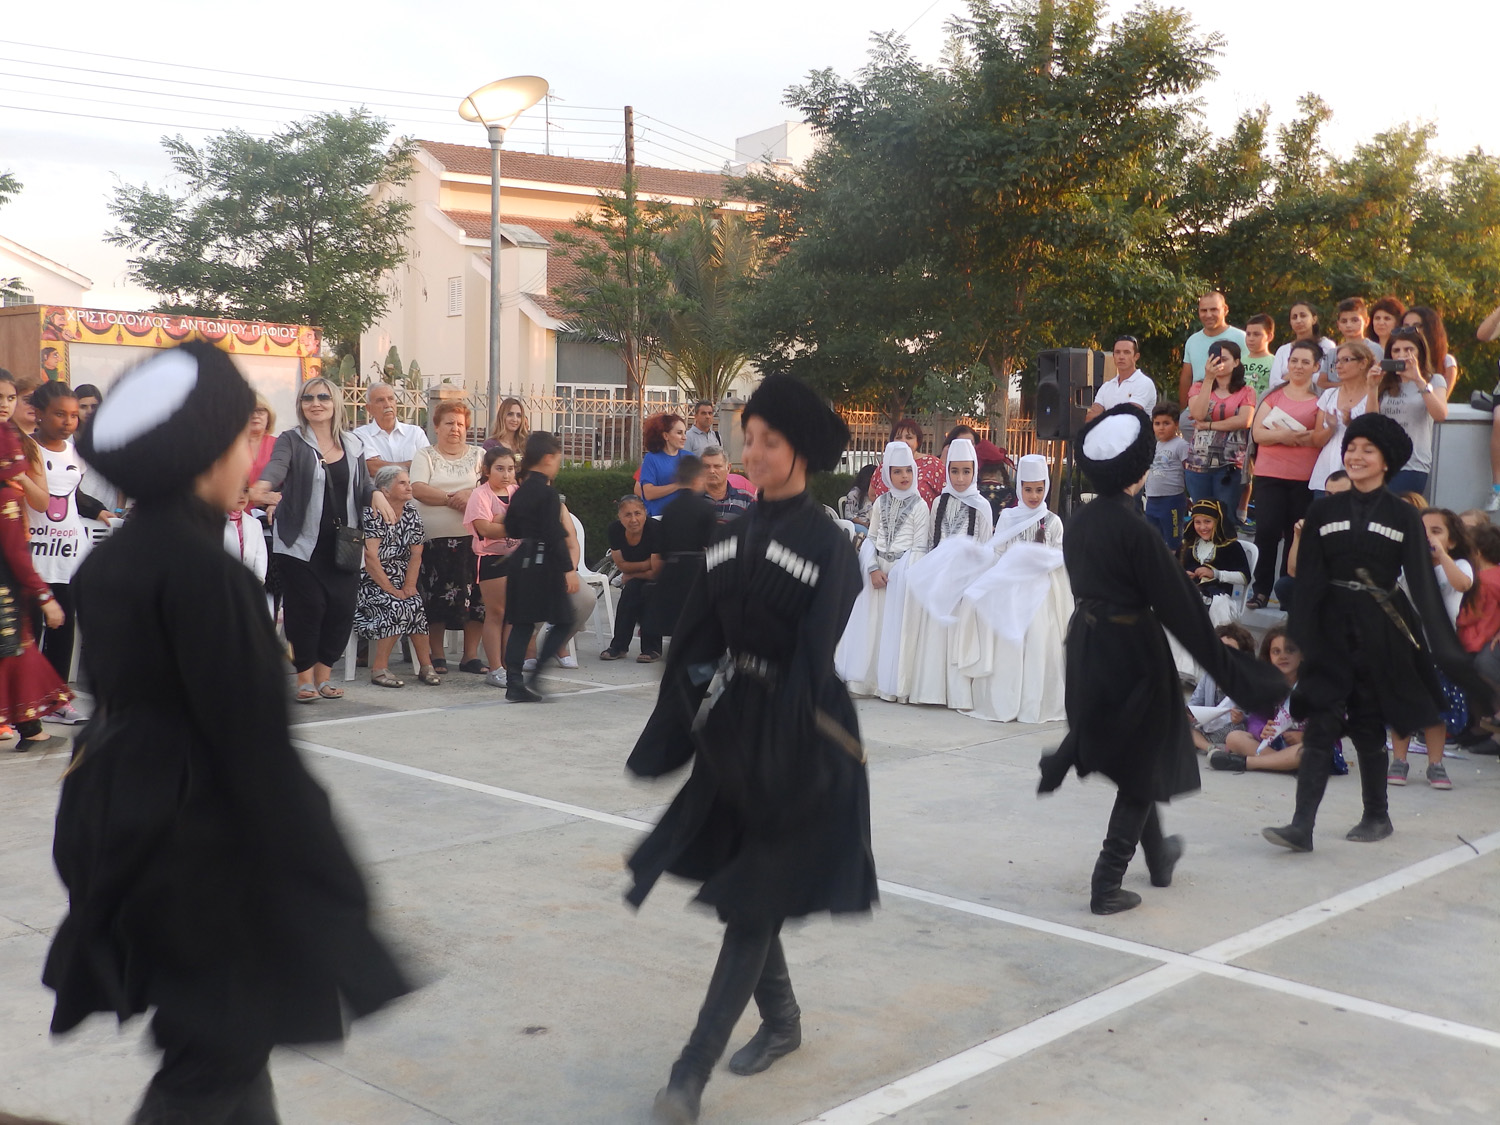 multicultural_Childrens_Festival_Ayios_Dhometios28516_29